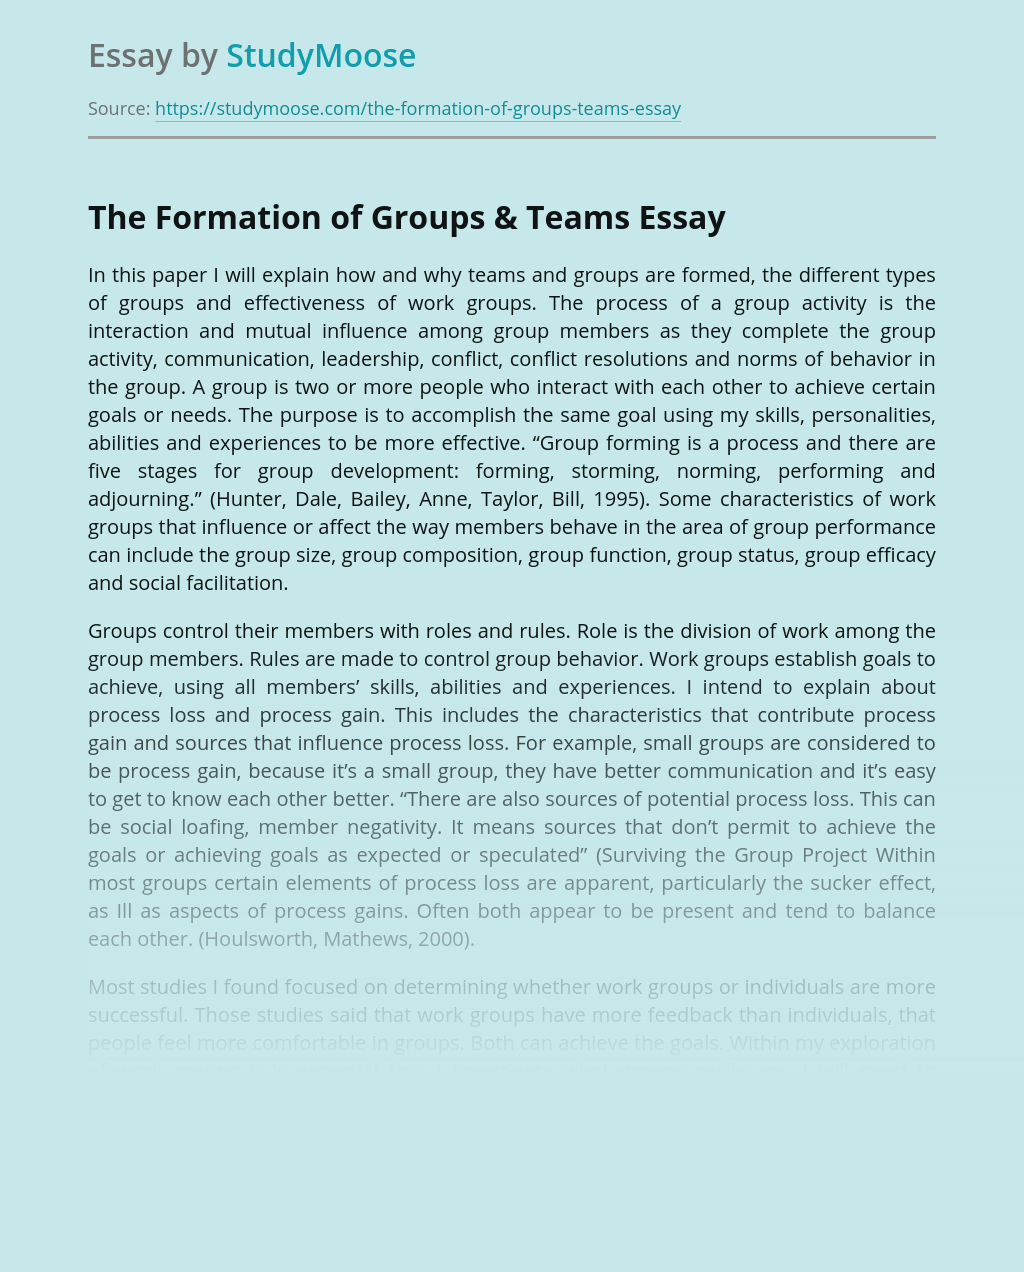 The Formation of Groups & Teams